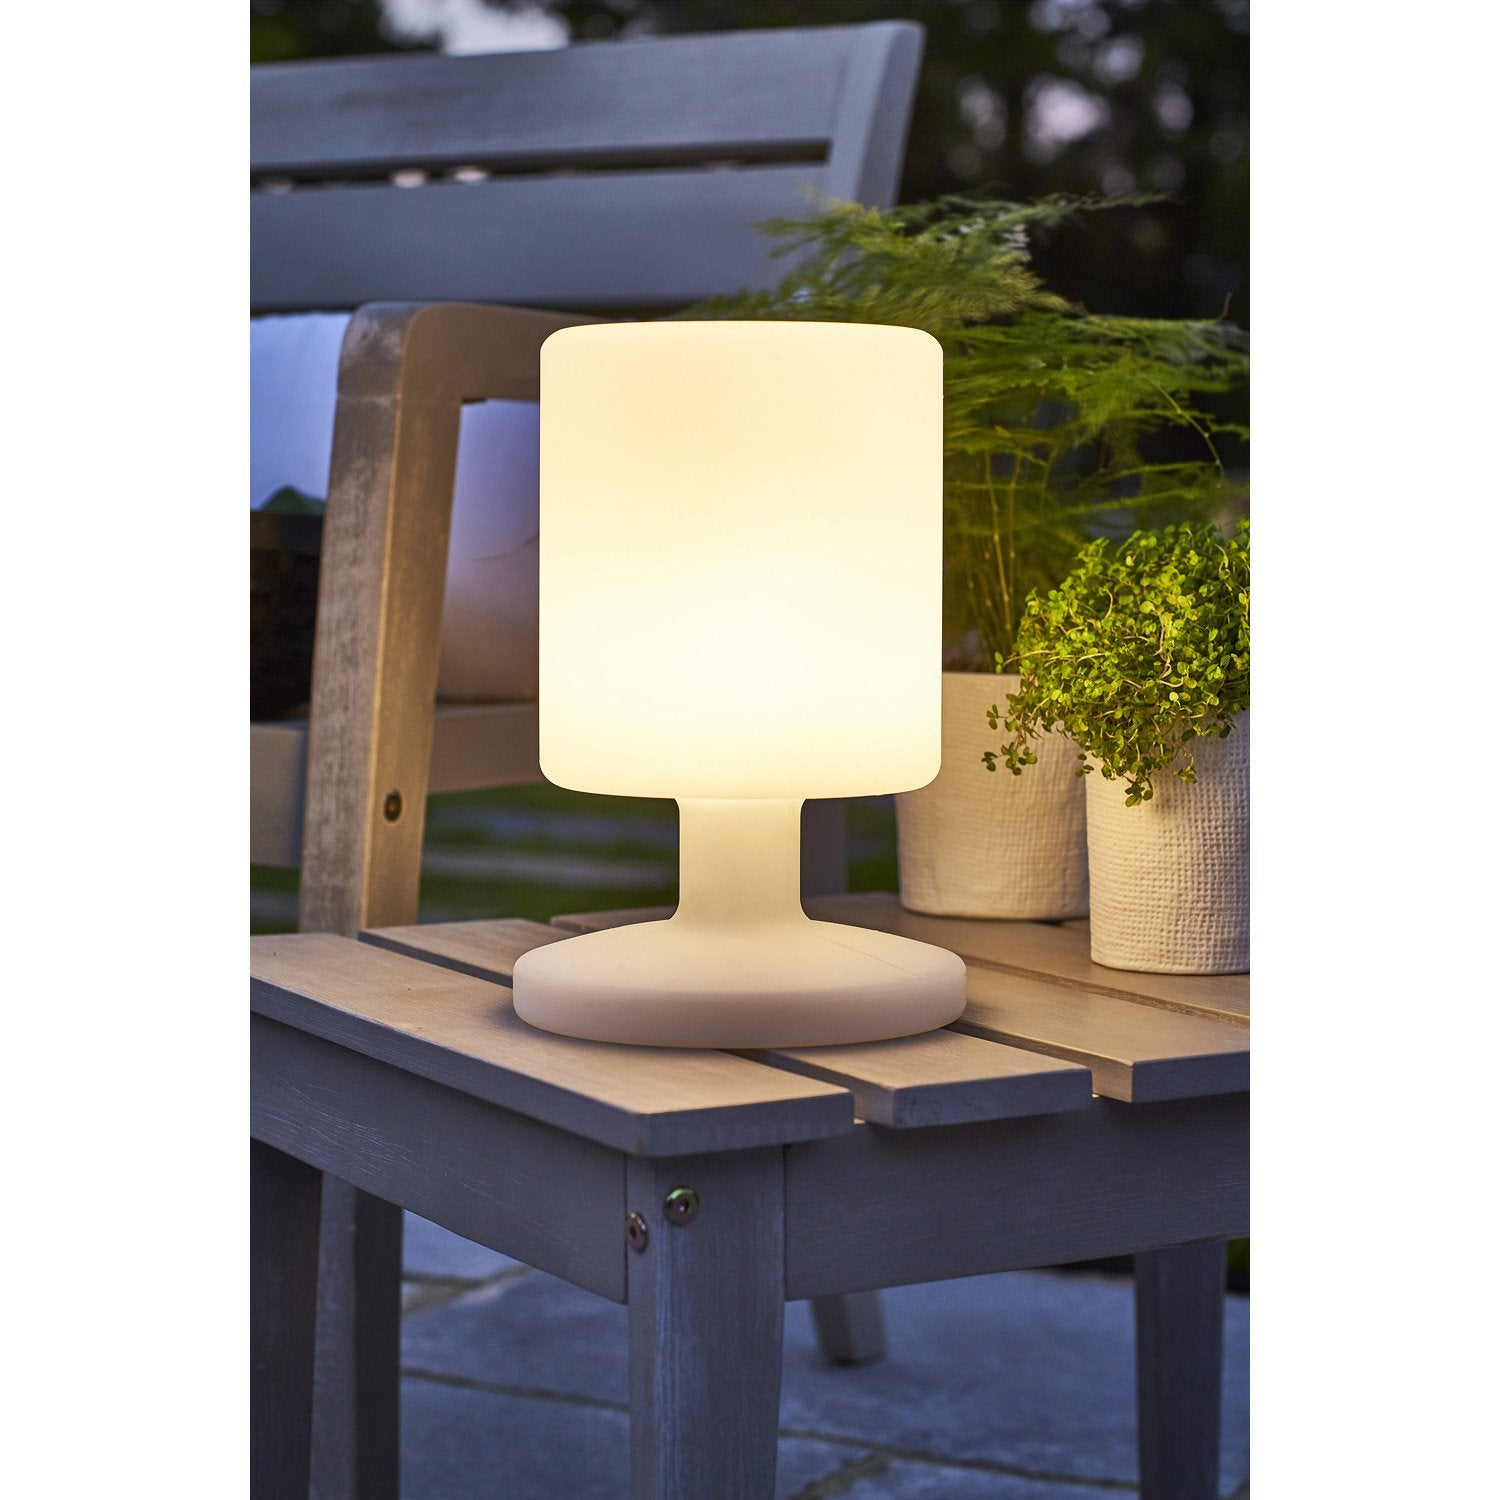 Lampe de table ext rieure led int gr e 5 w 130 lm blanc for Lampe led exterieure